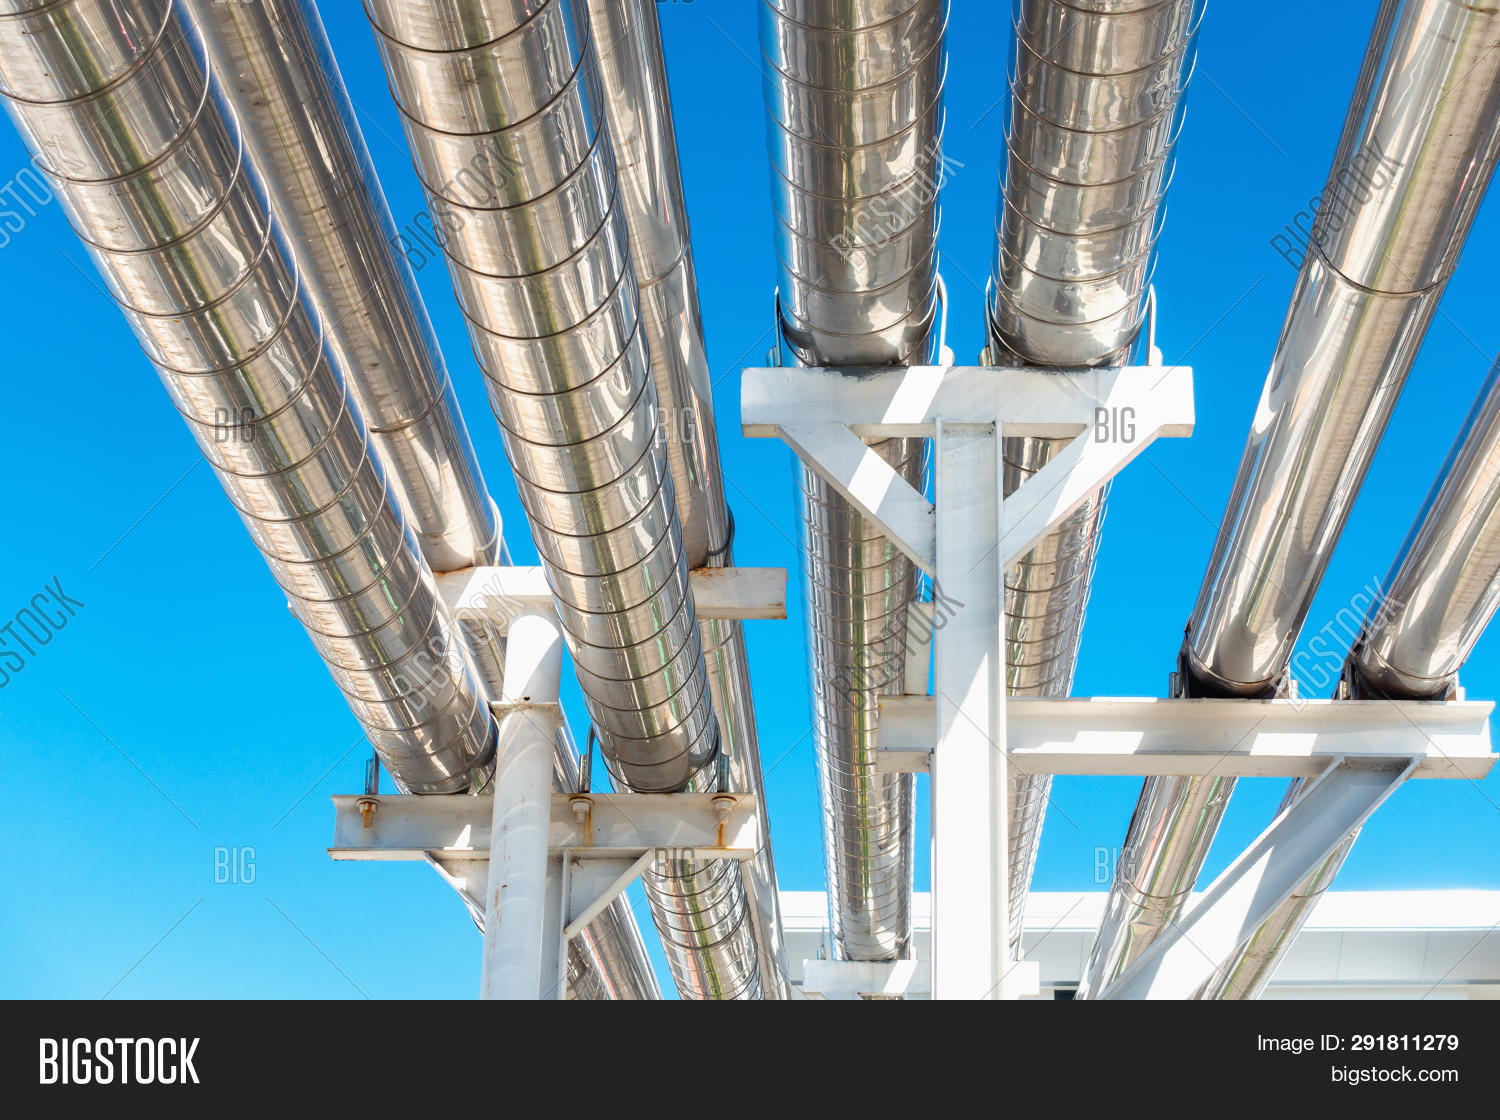 Cooling Chiller Steam Image & Photo (Free Trial) | Bigstock